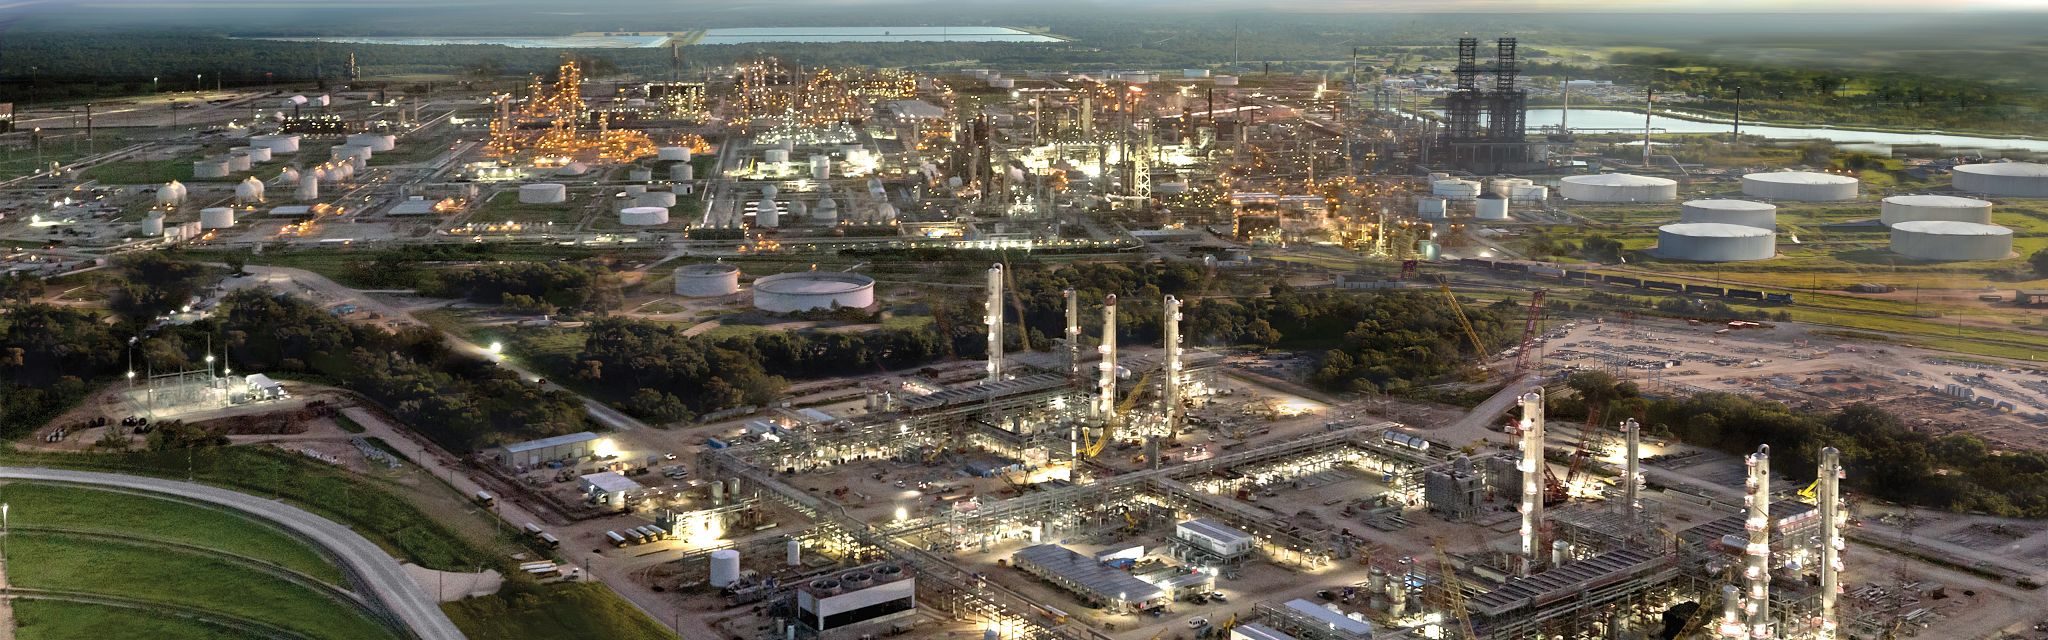 Early morning shot of the Sweeny Refinery, still lit up